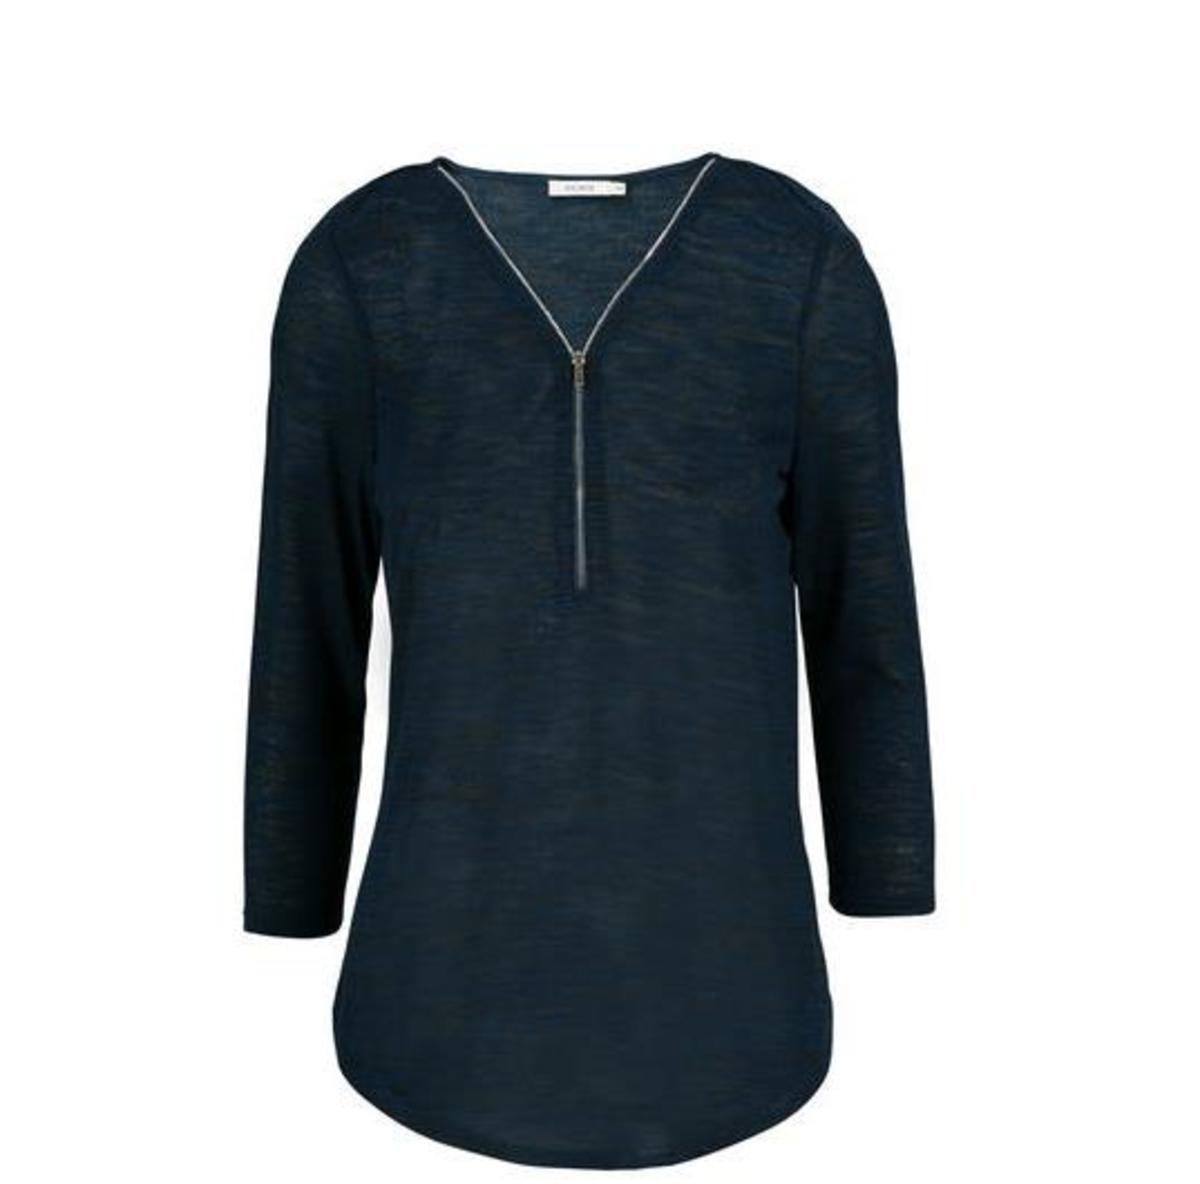 3/4 sleeve top with adjustable zipper neckline